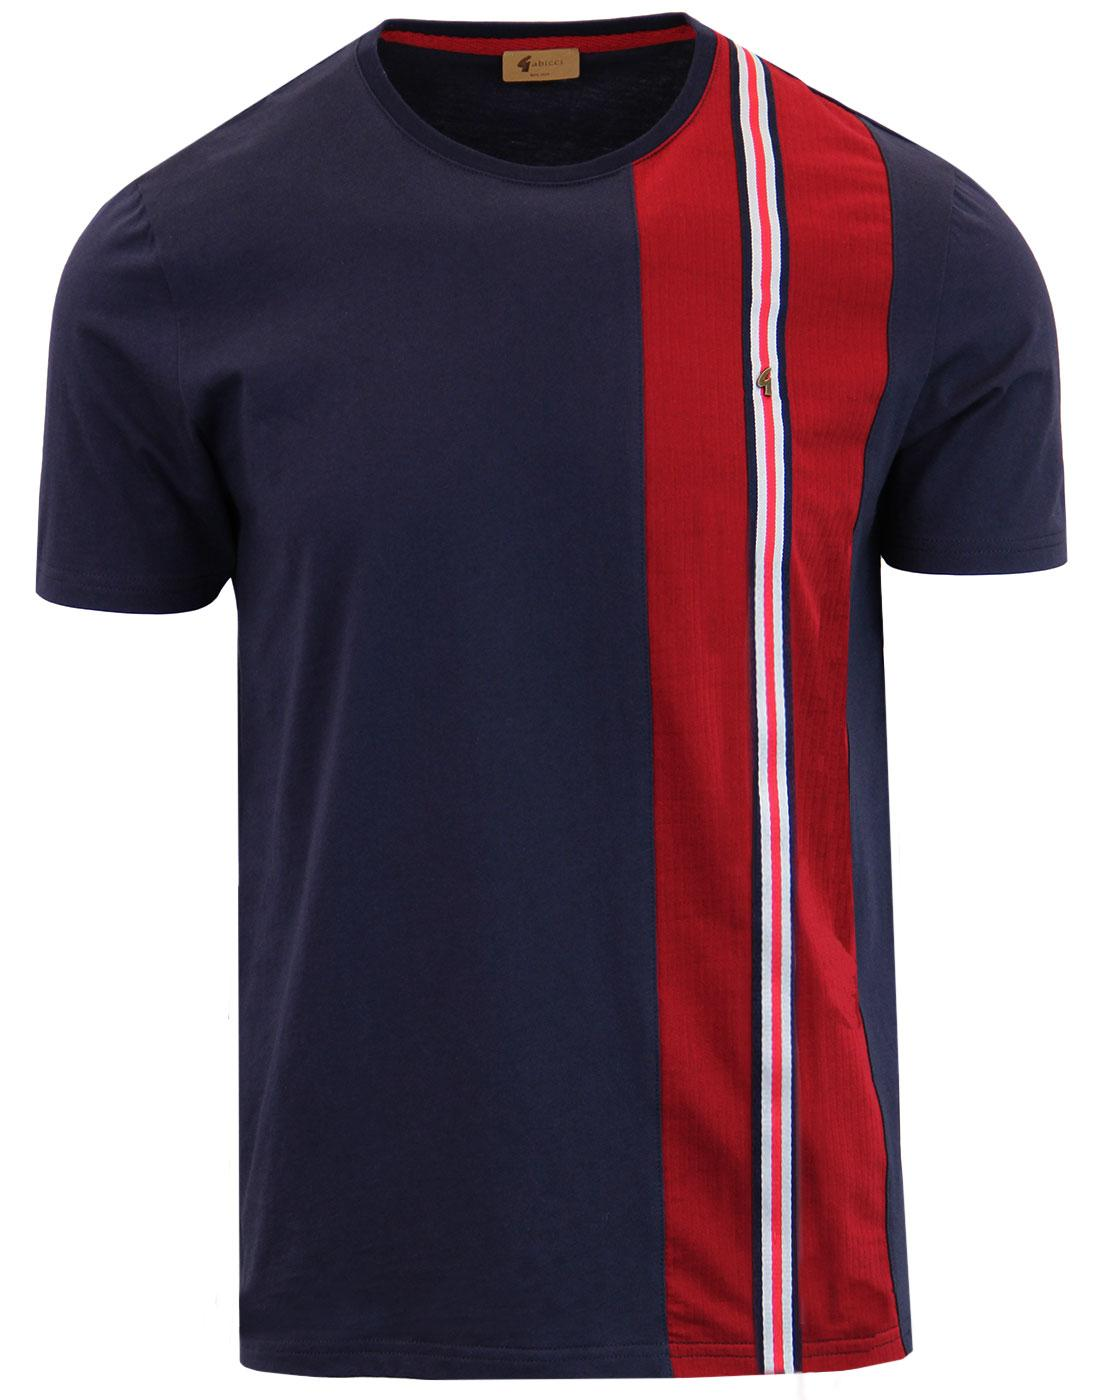 Beta GABICCI VINTAGE Mod Racing Stripe Panel Tee N